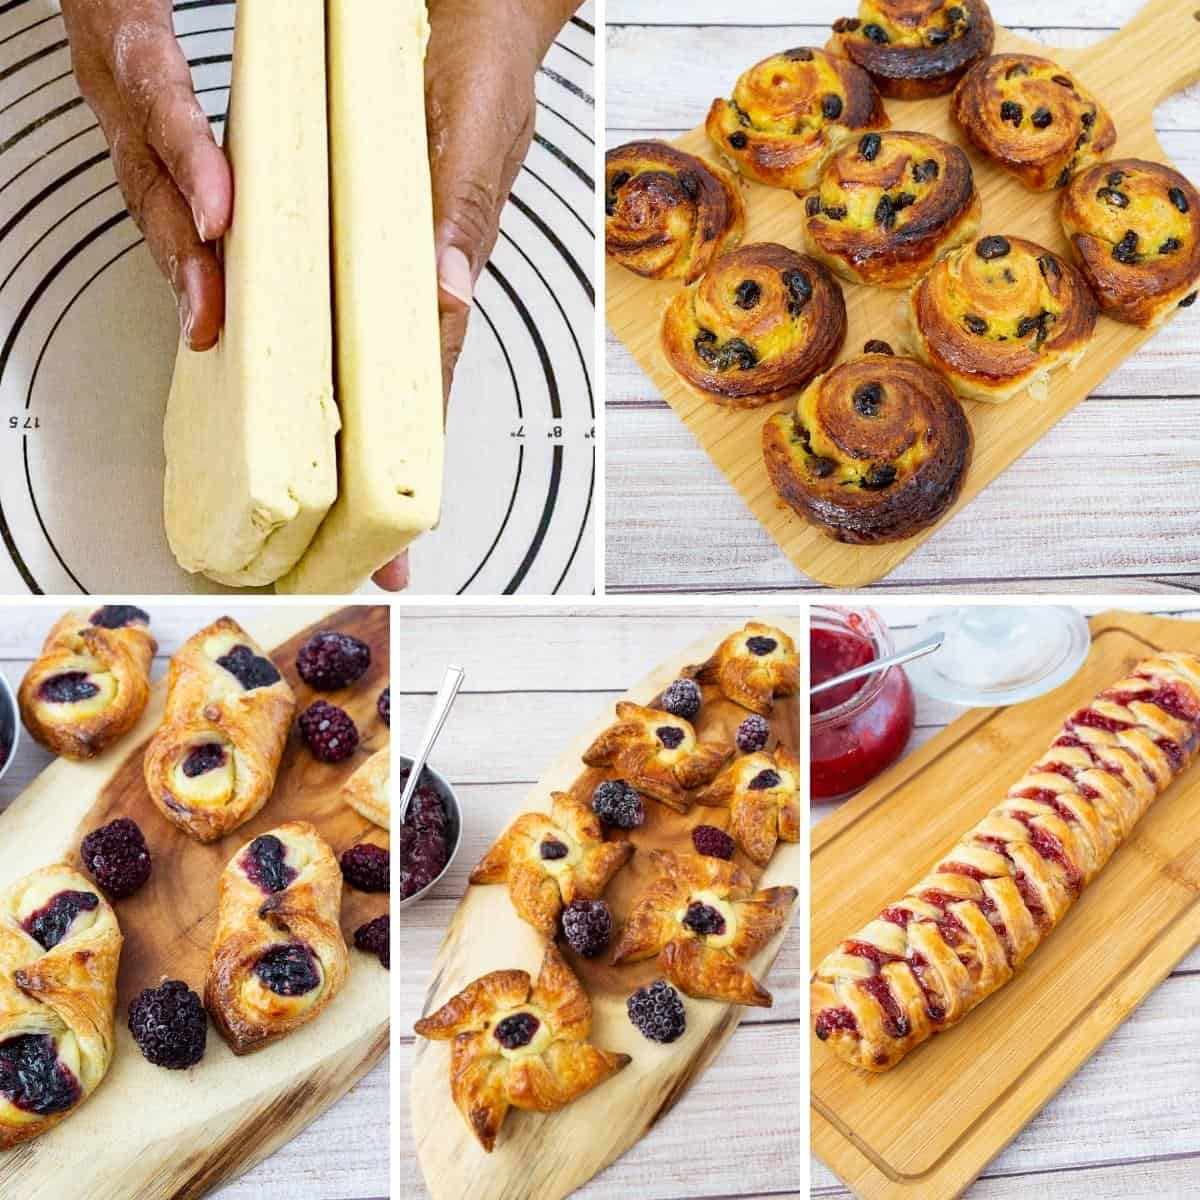 A collage of Danish pastry and vriations